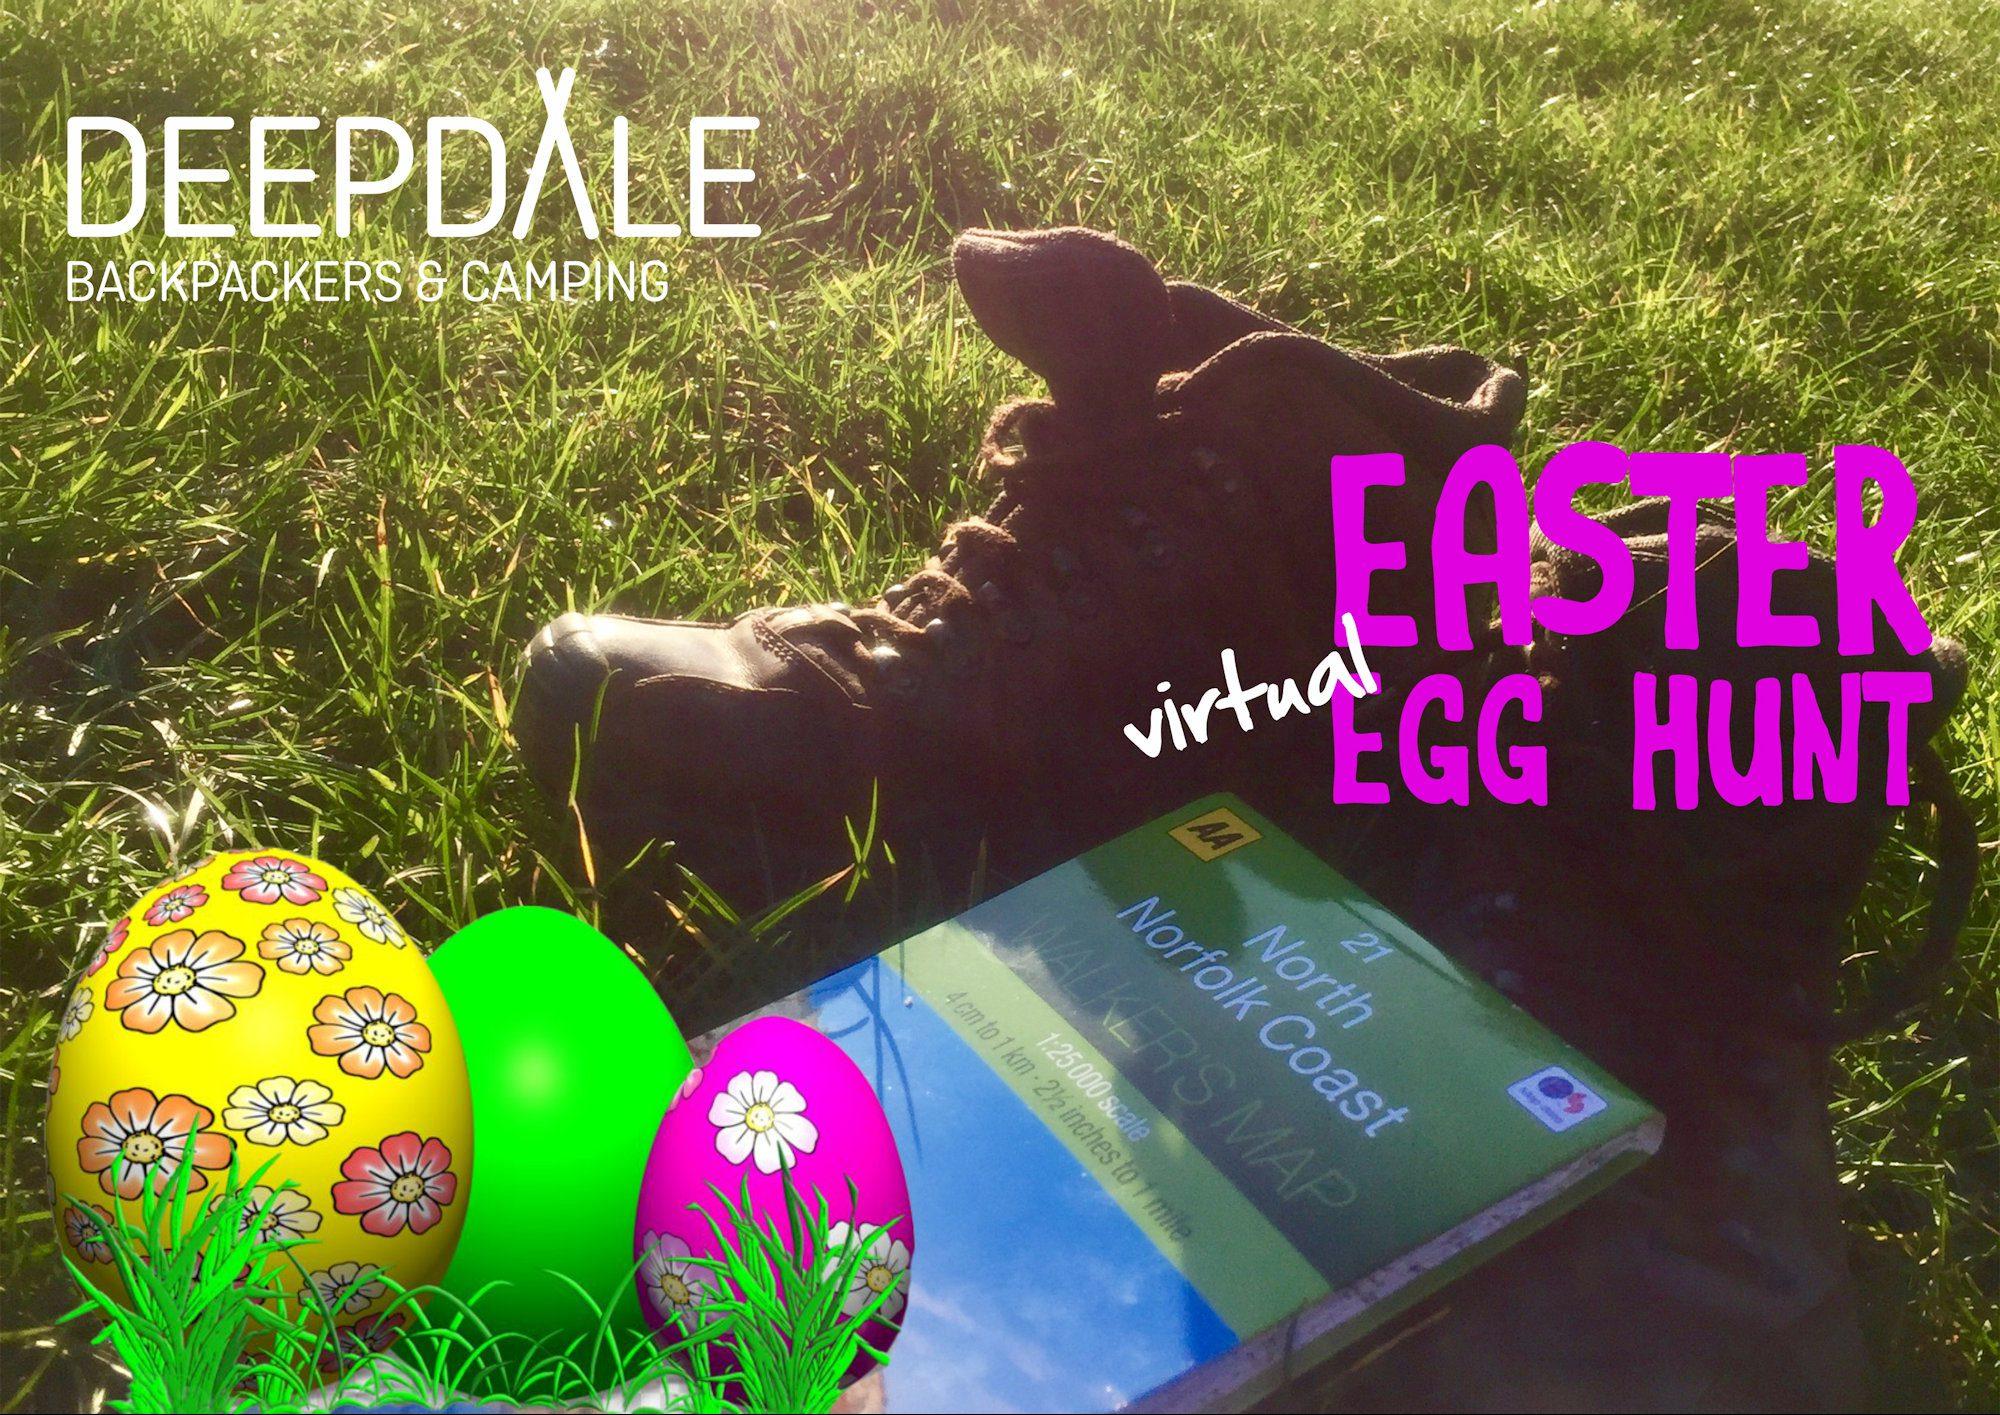 Things to do while you can't visit Deepdale #8: Virtual Easter Egg Hunt